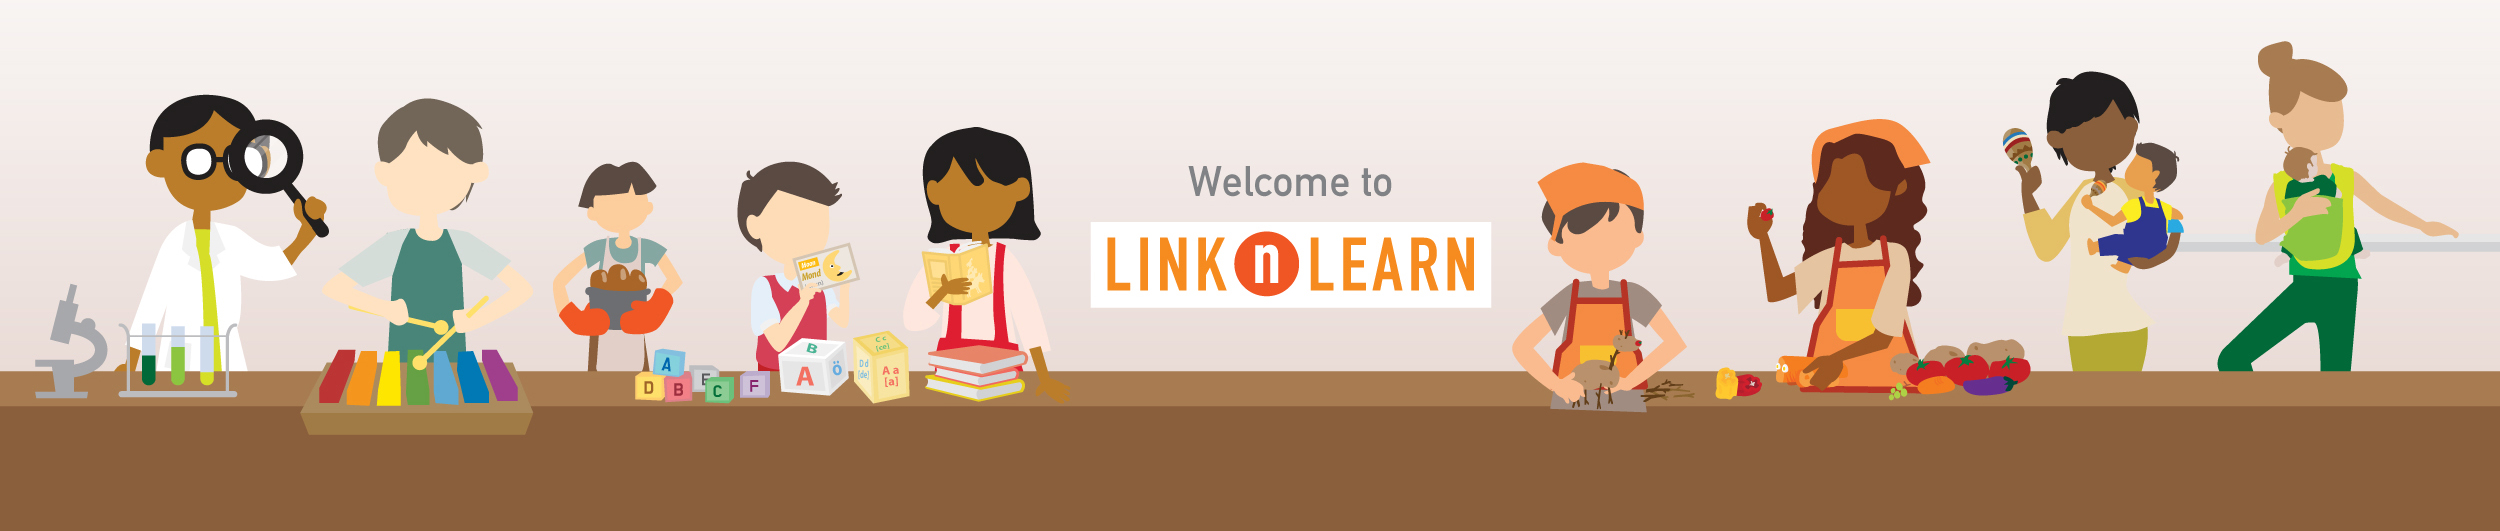 Link n Learn - About Us